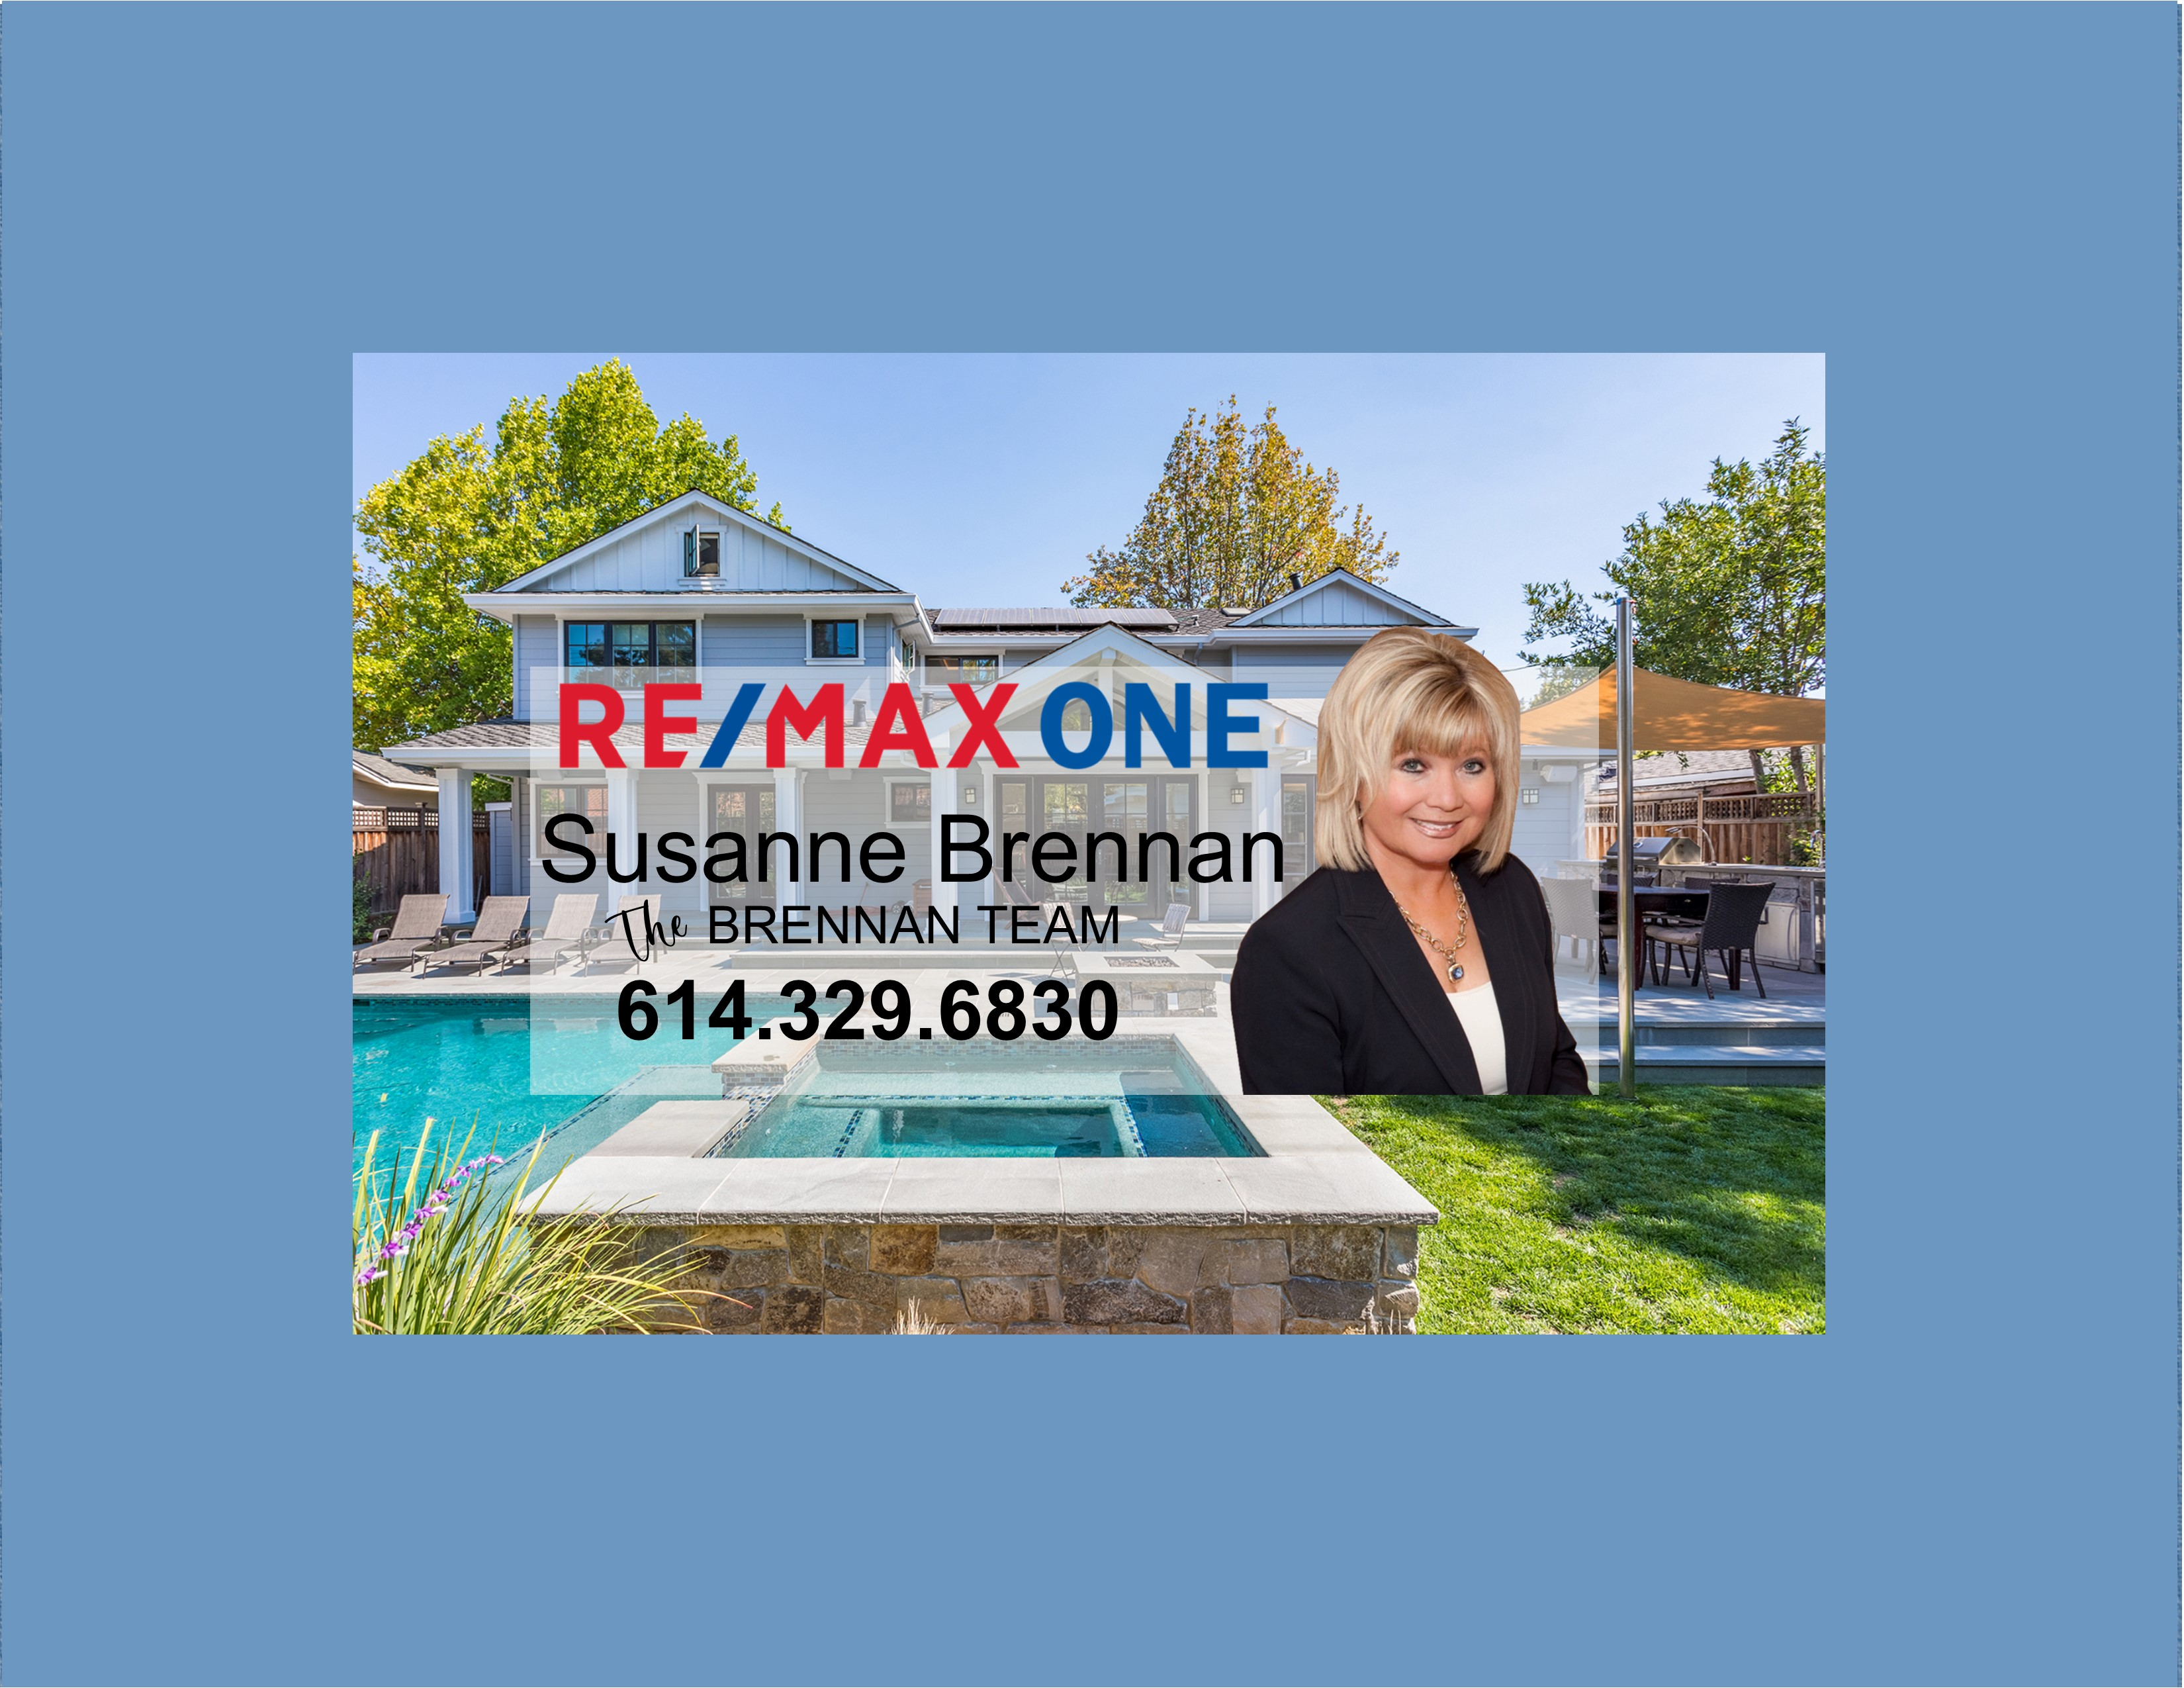 Welcome to The Brennan Team